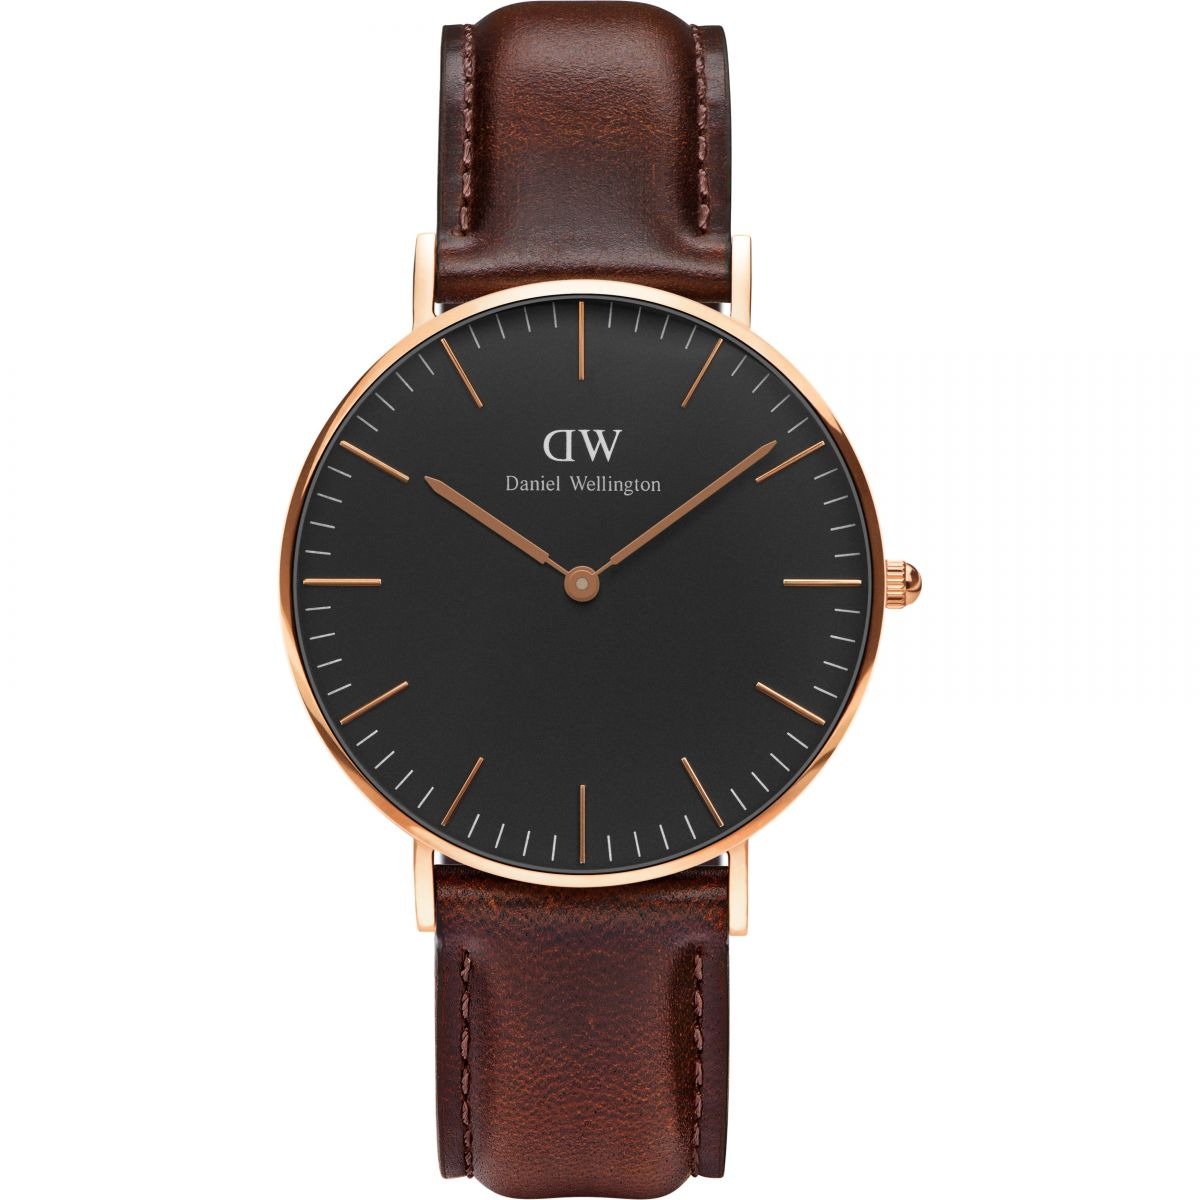 unisexe daniel wellington classique noir bristol montre 36mm montre dw00100137. Black Bedroom Furniture Sets. Home Design Ideas